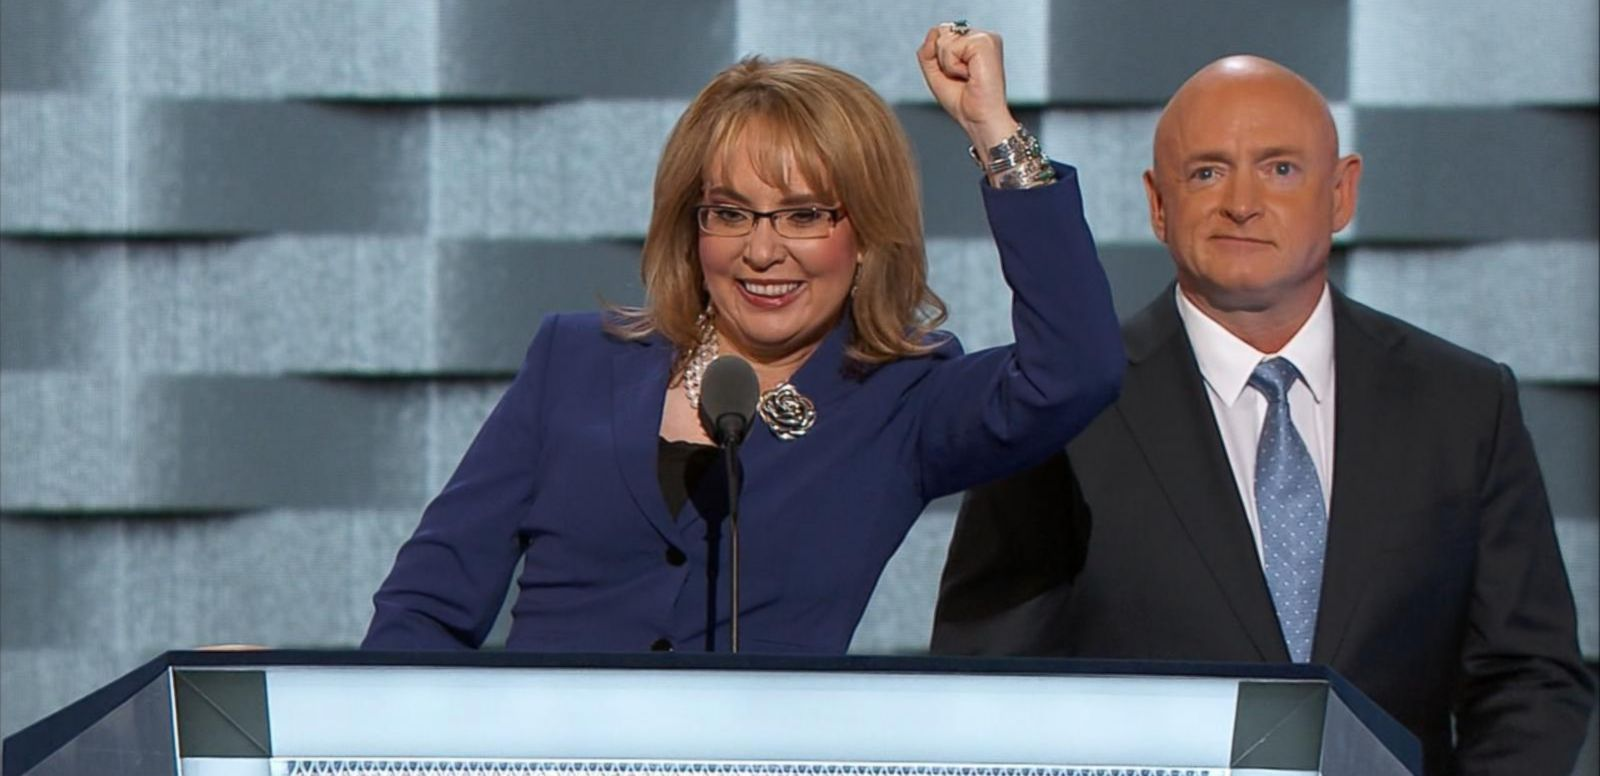 VIDEO: Gabby Giffords: 'I Want to Say Madam President'